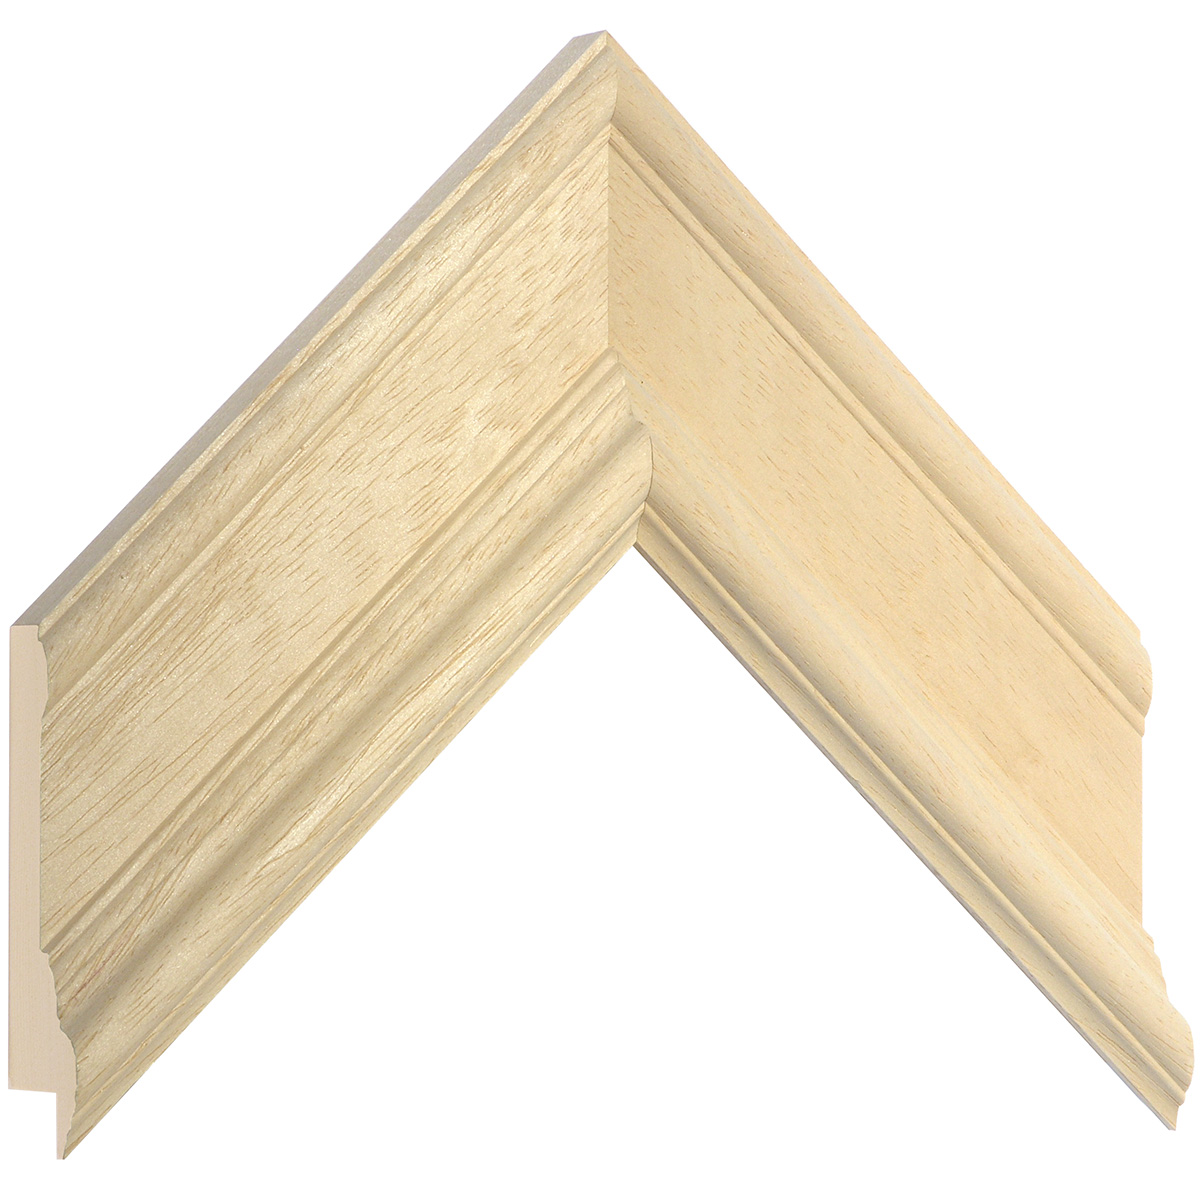 Moulding ayous, width 65mm, height 35mm, bare timber